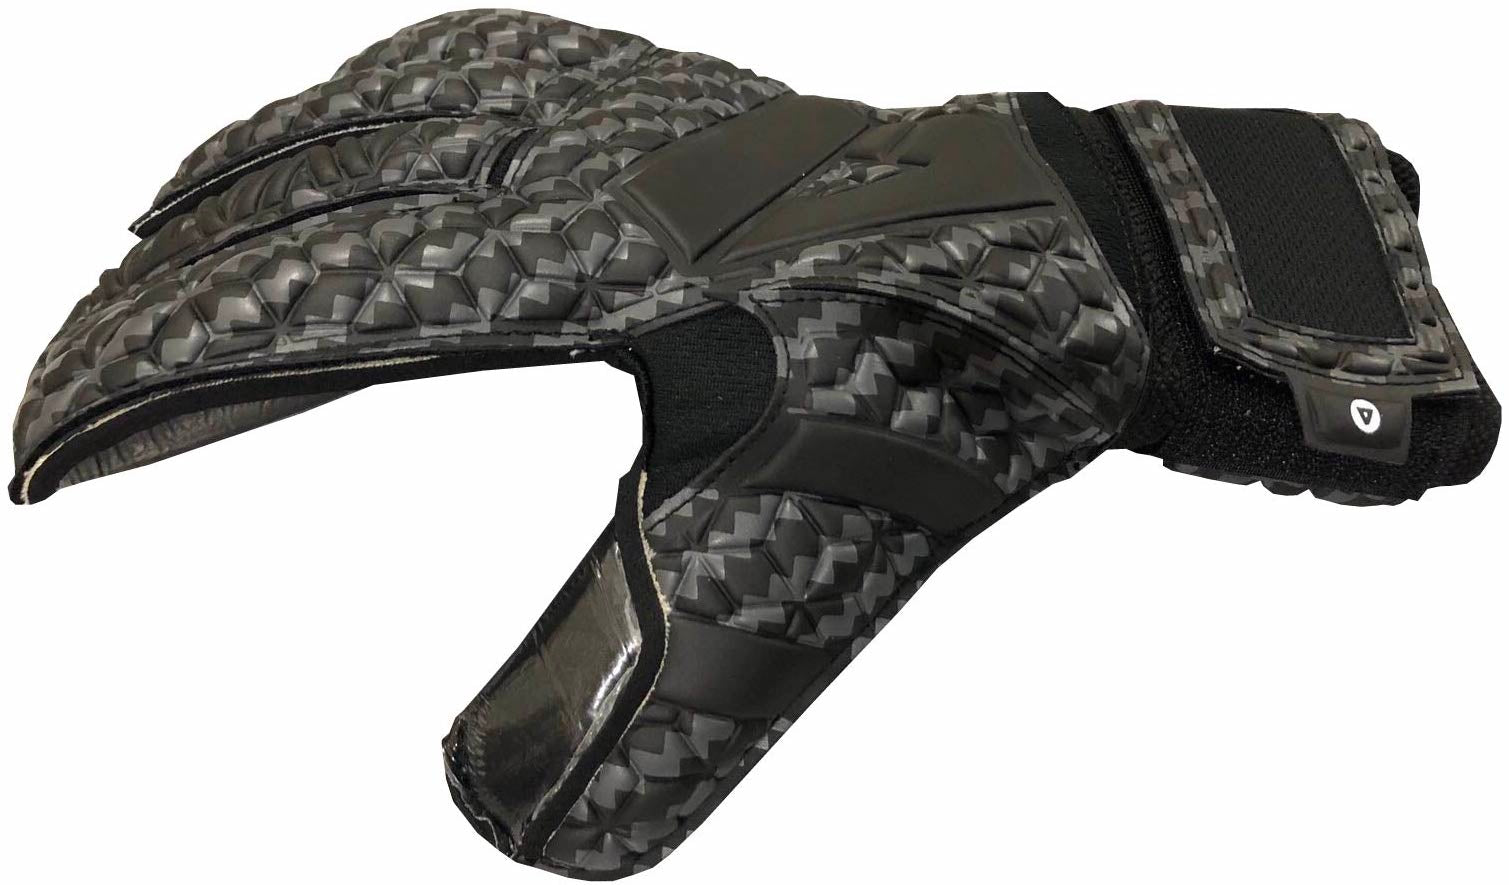 Viper Carbon Fibre V7 Junior Goalkeeper Gloves